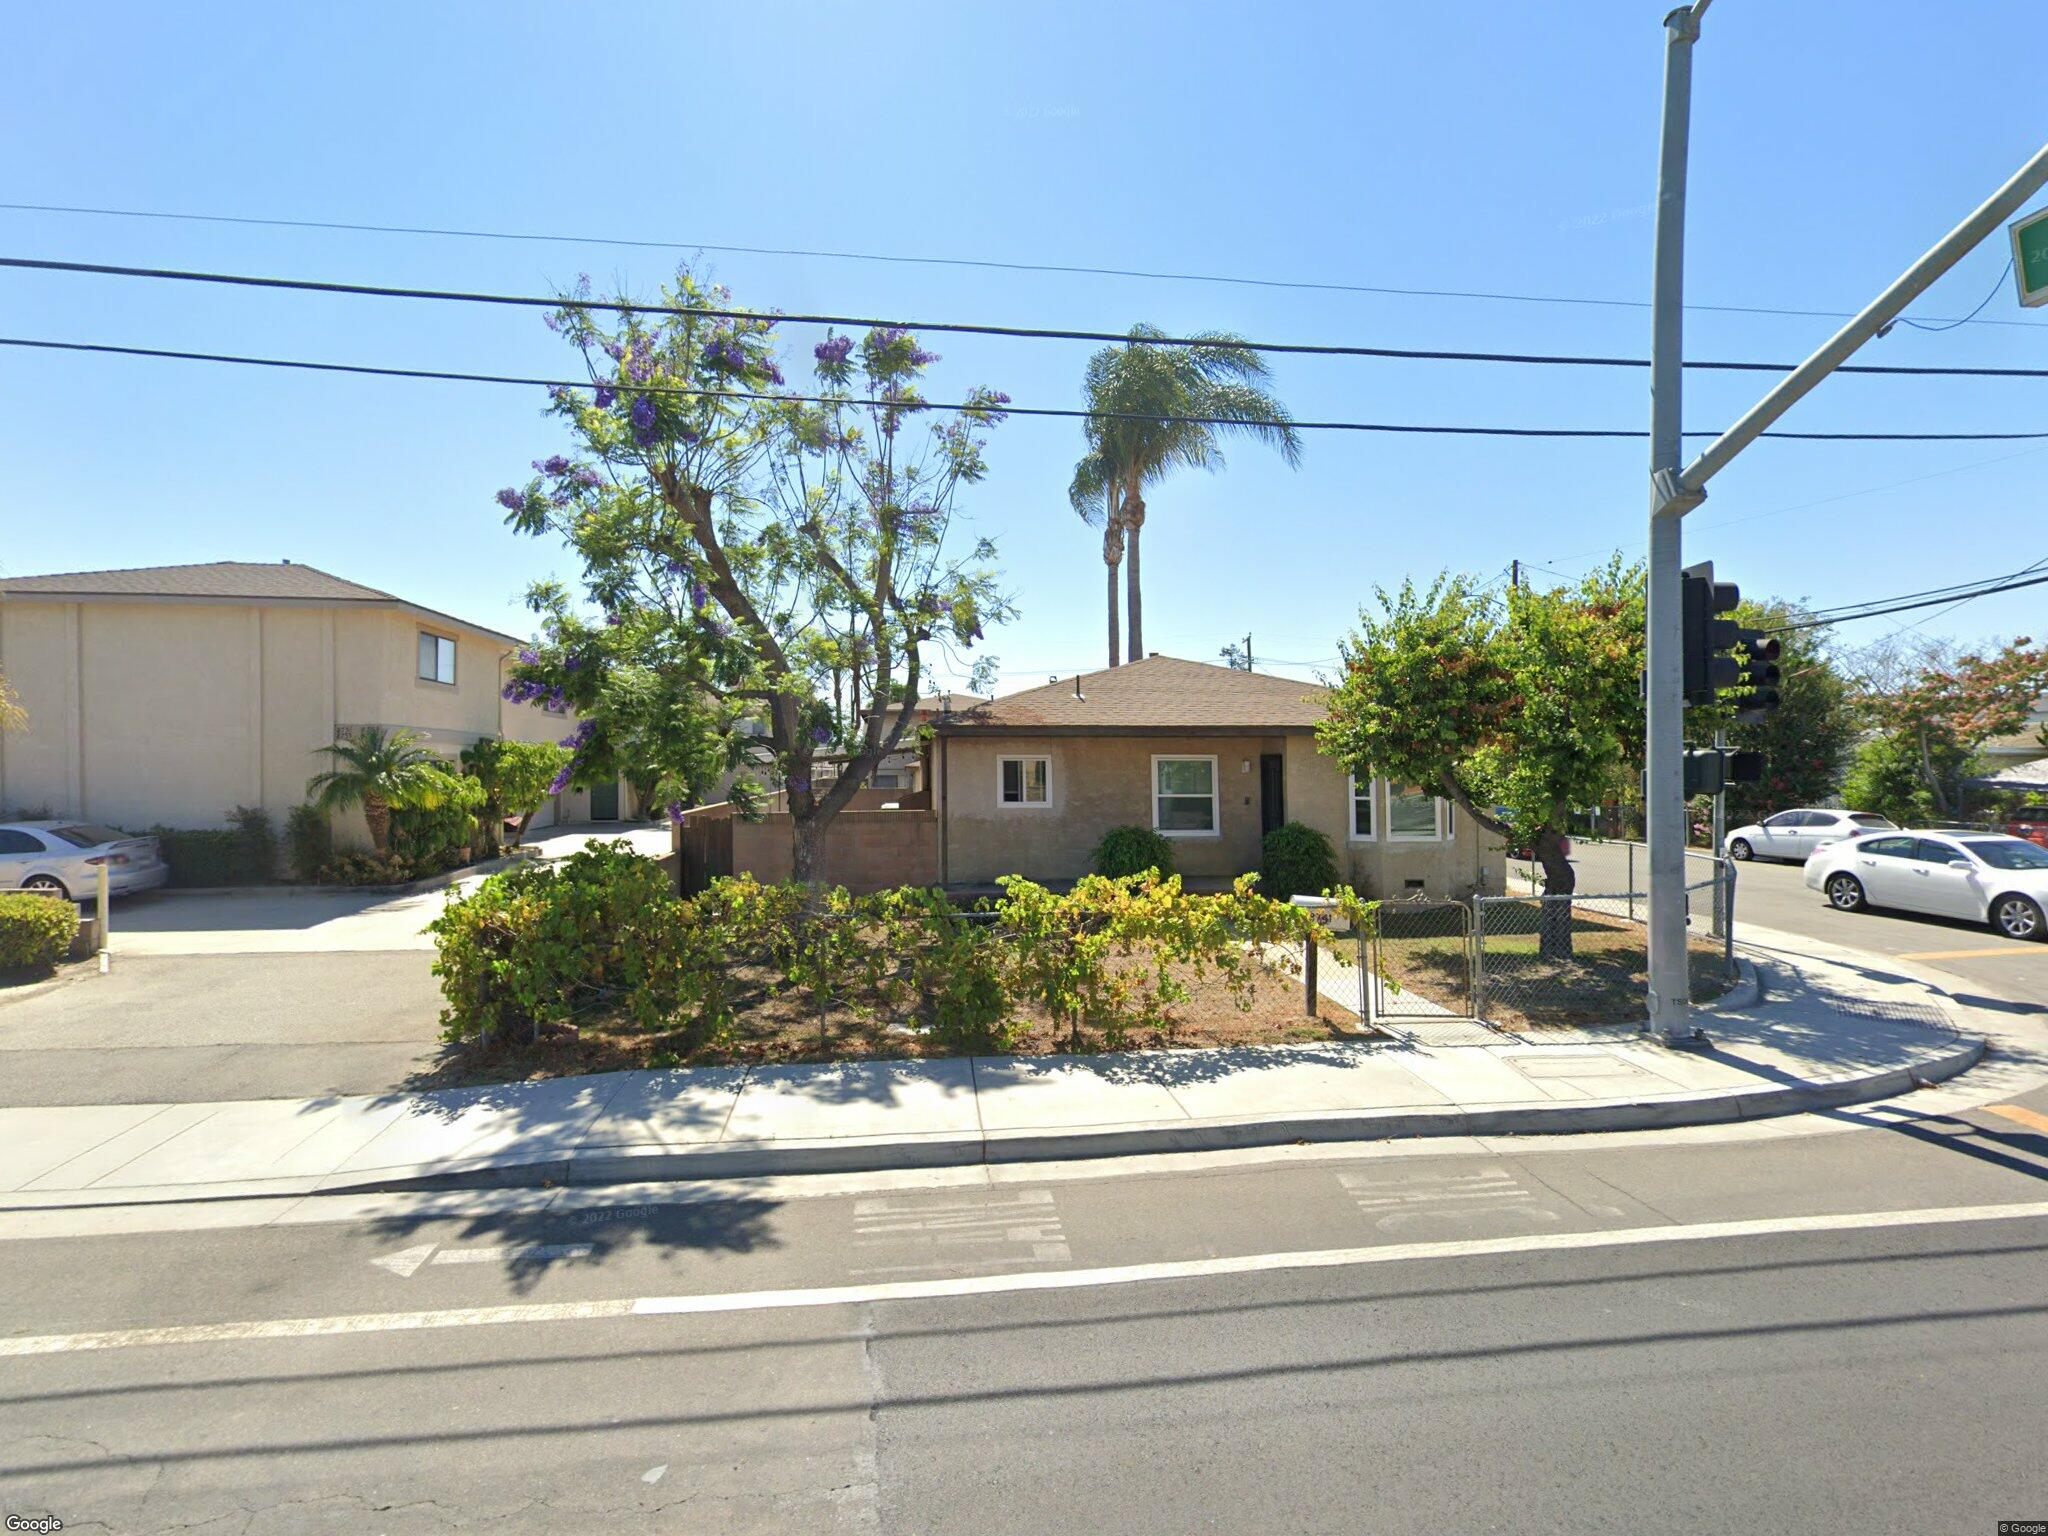 8741 Moody St, Cypress, CA 90630 | Trulia